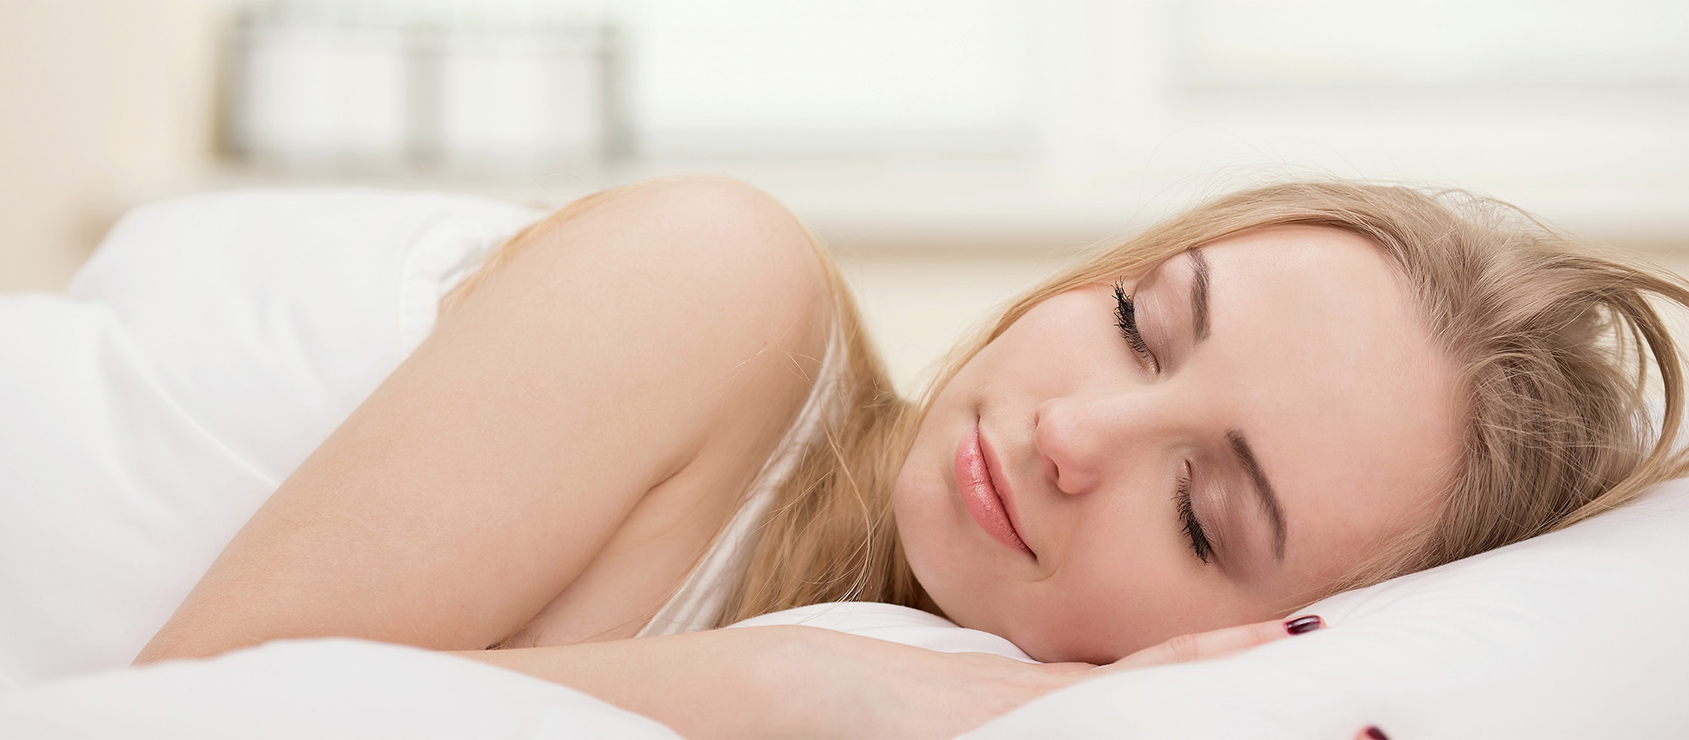 A good night's sleep can make us feel ready to take on the world